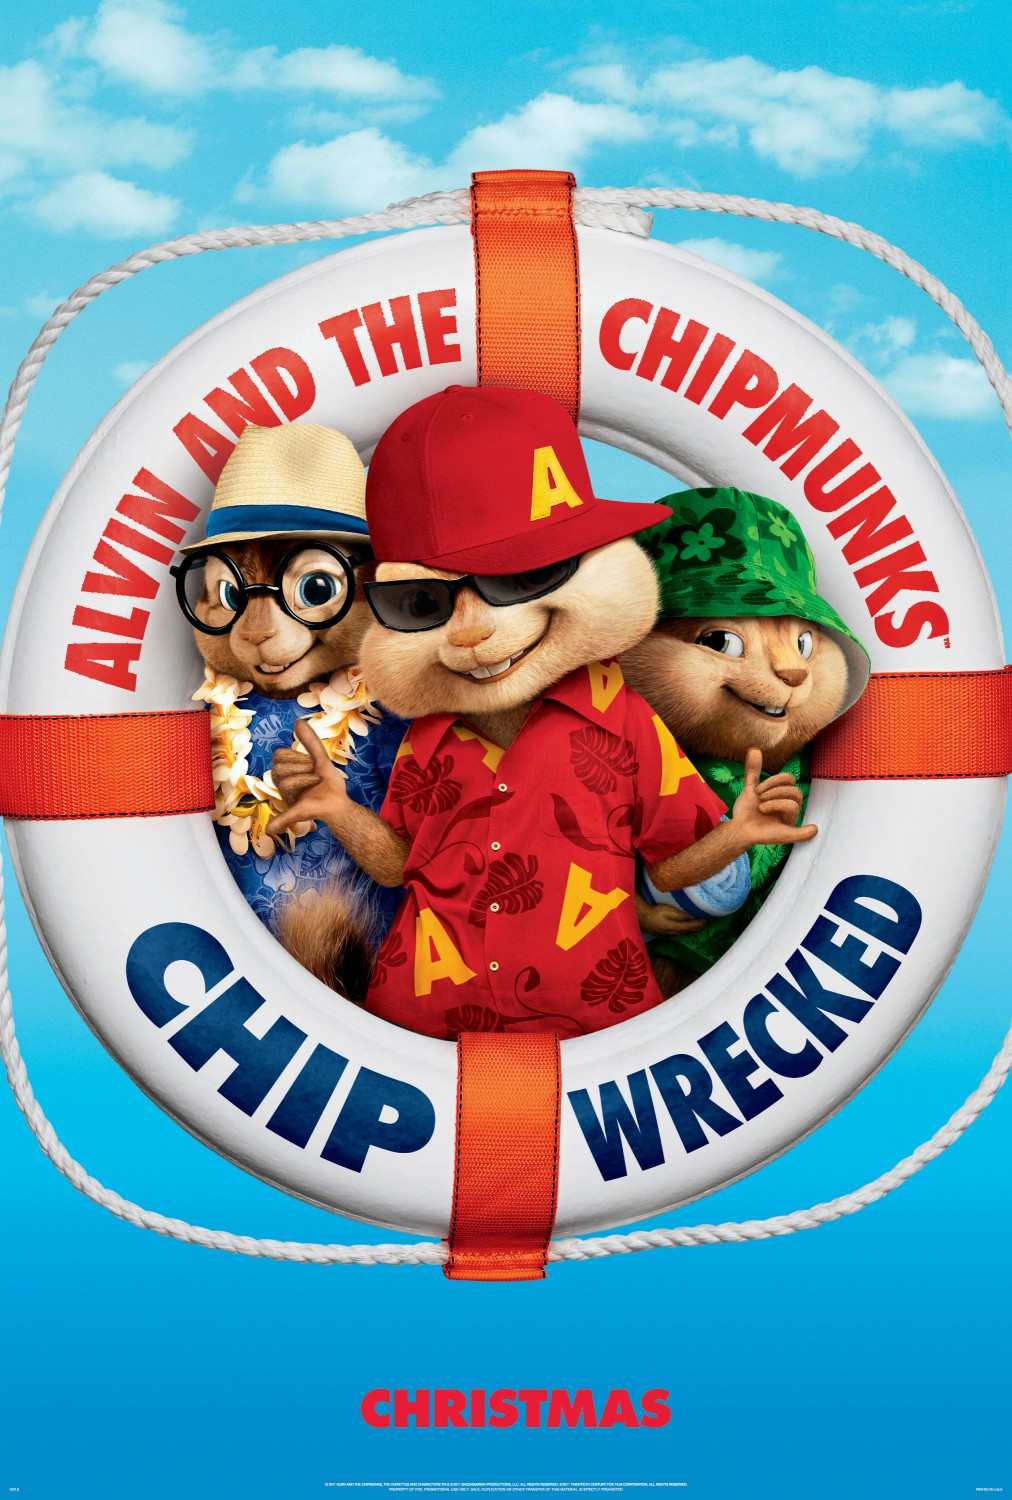 alvin and the chipmunks 4 mp3 songs free download